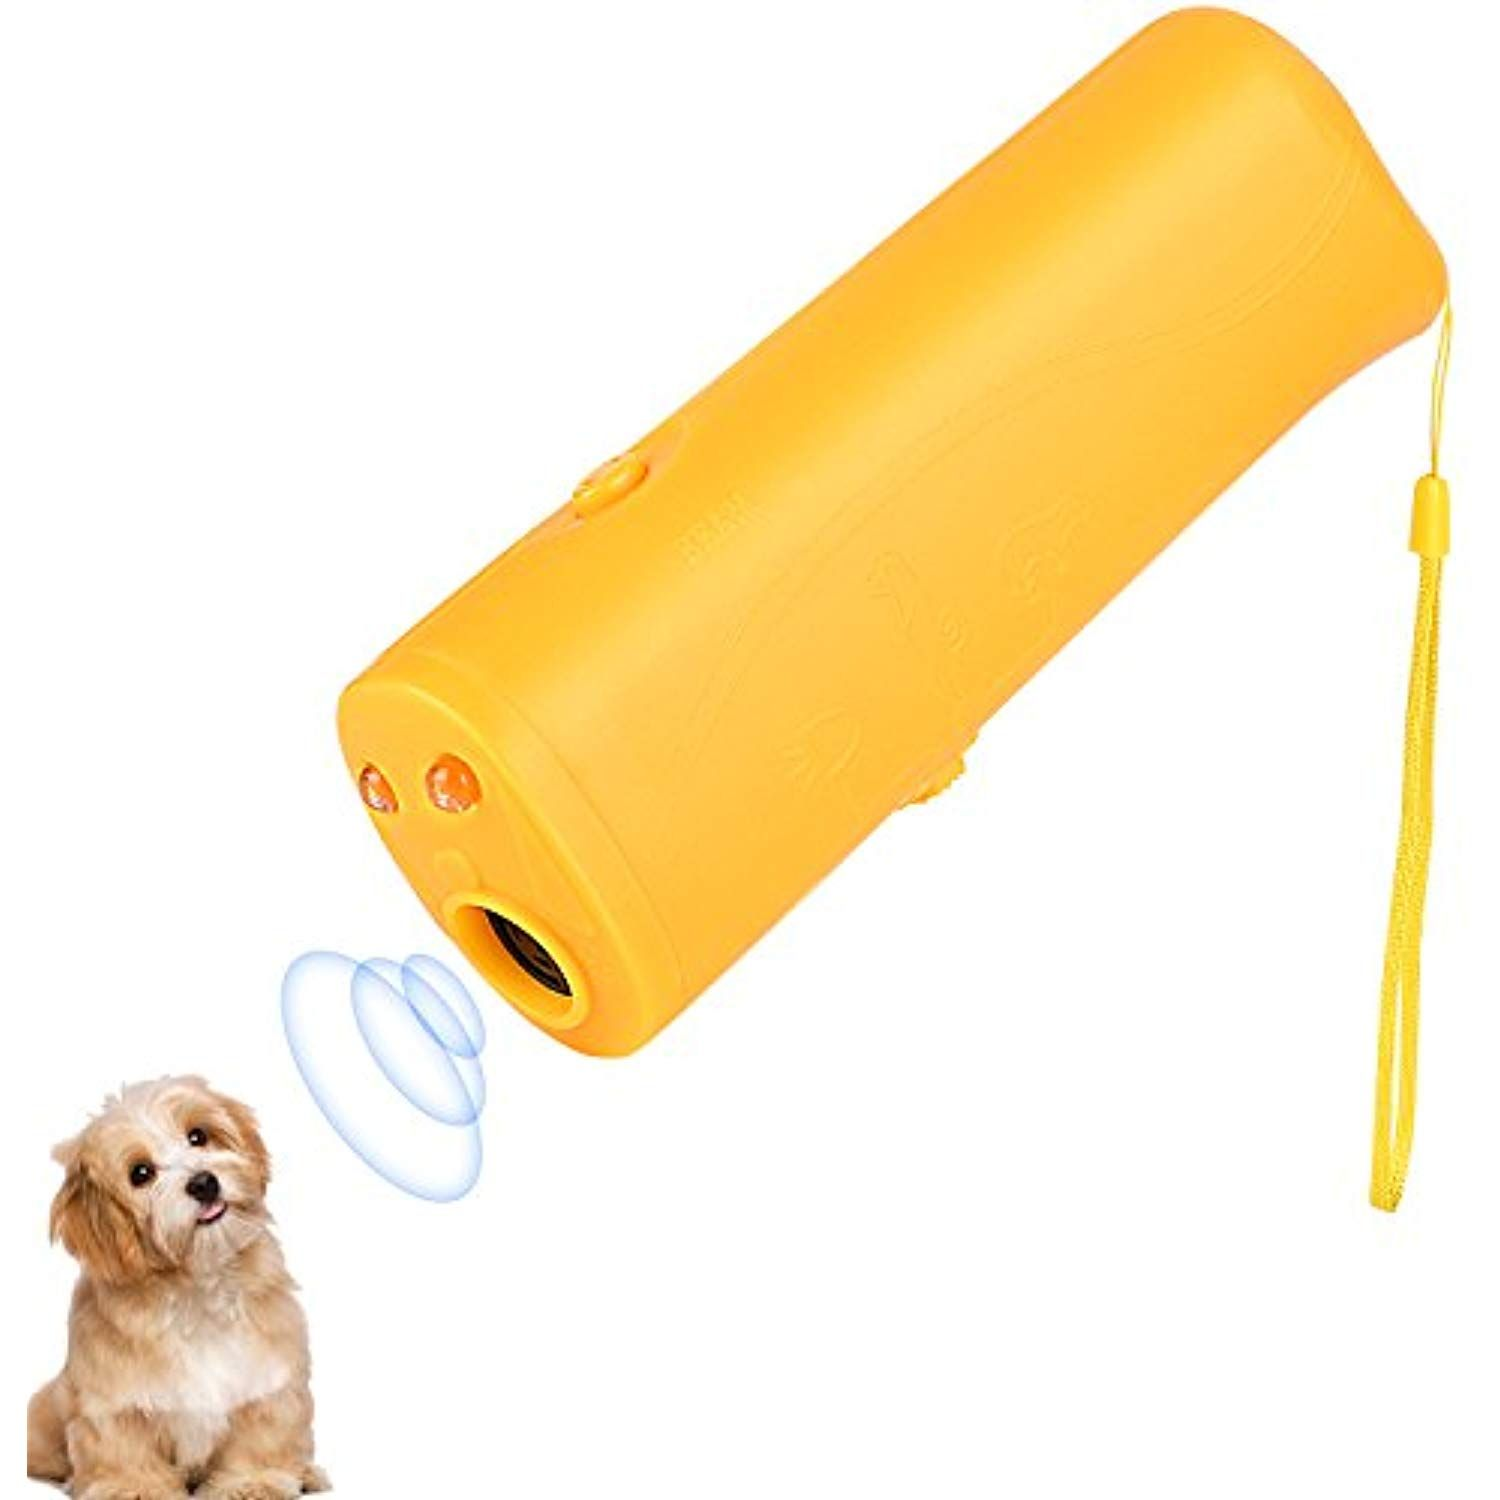 Onson Ultrasonic Dog Repeller And Trainer Device 3 In 1 Led Pet